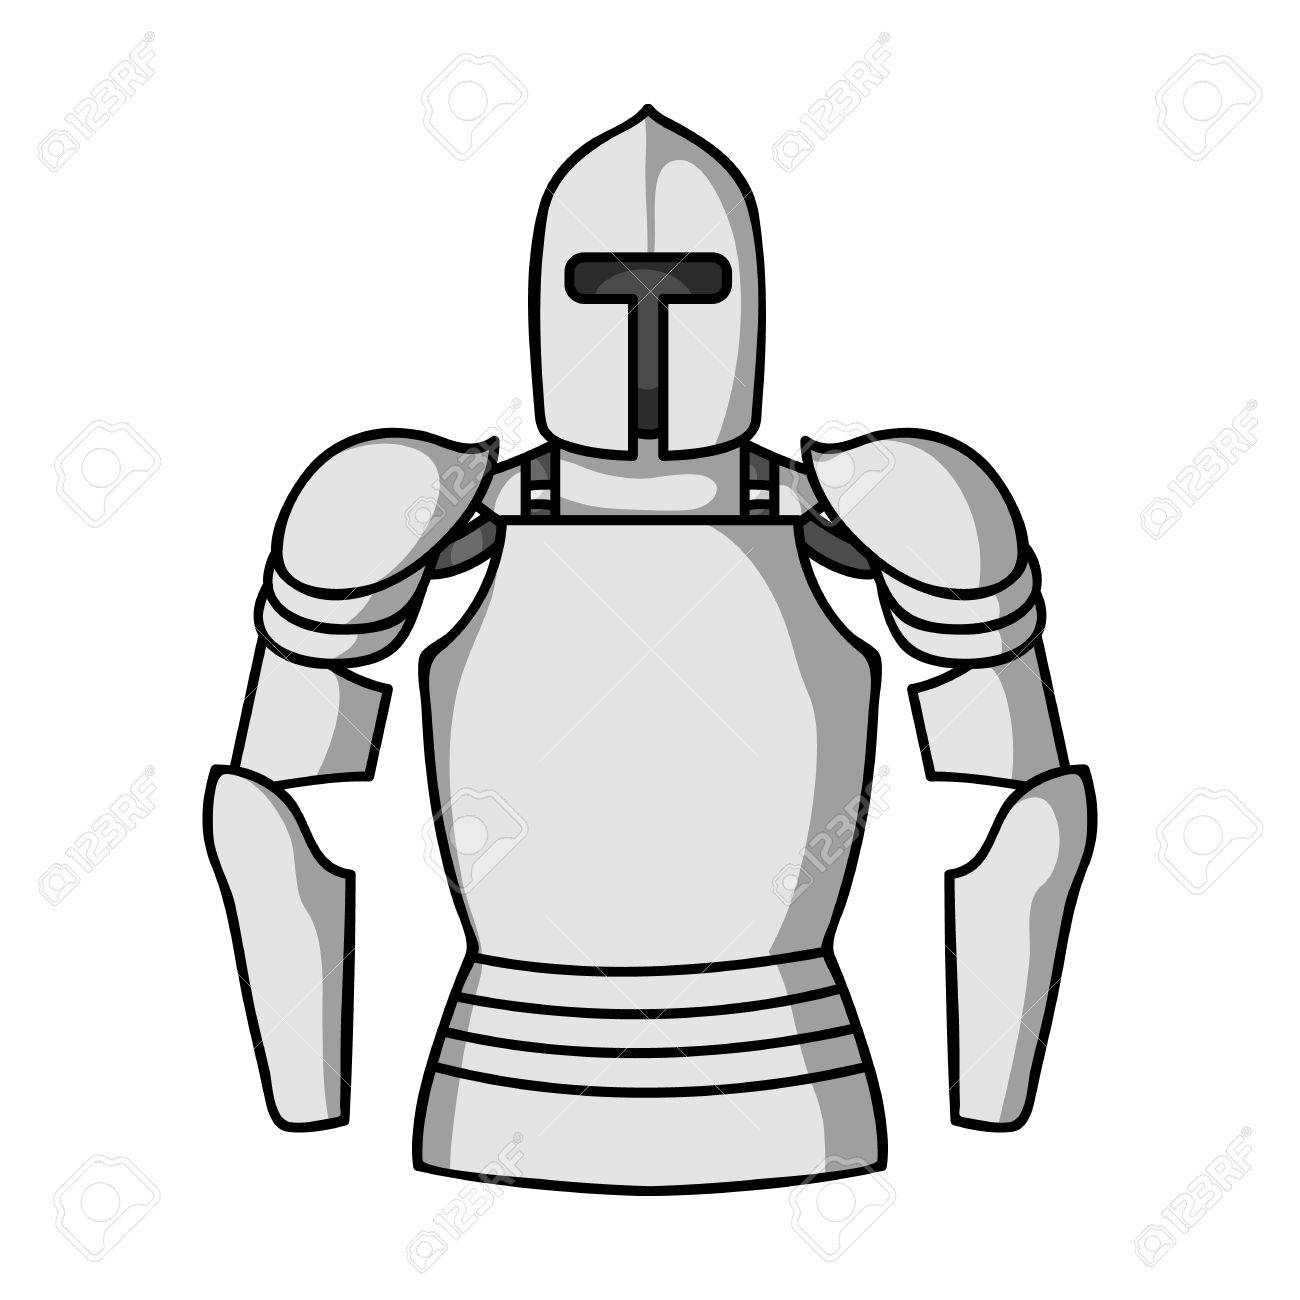 Armor Clipart Free & Free Clip Art Images #19680.